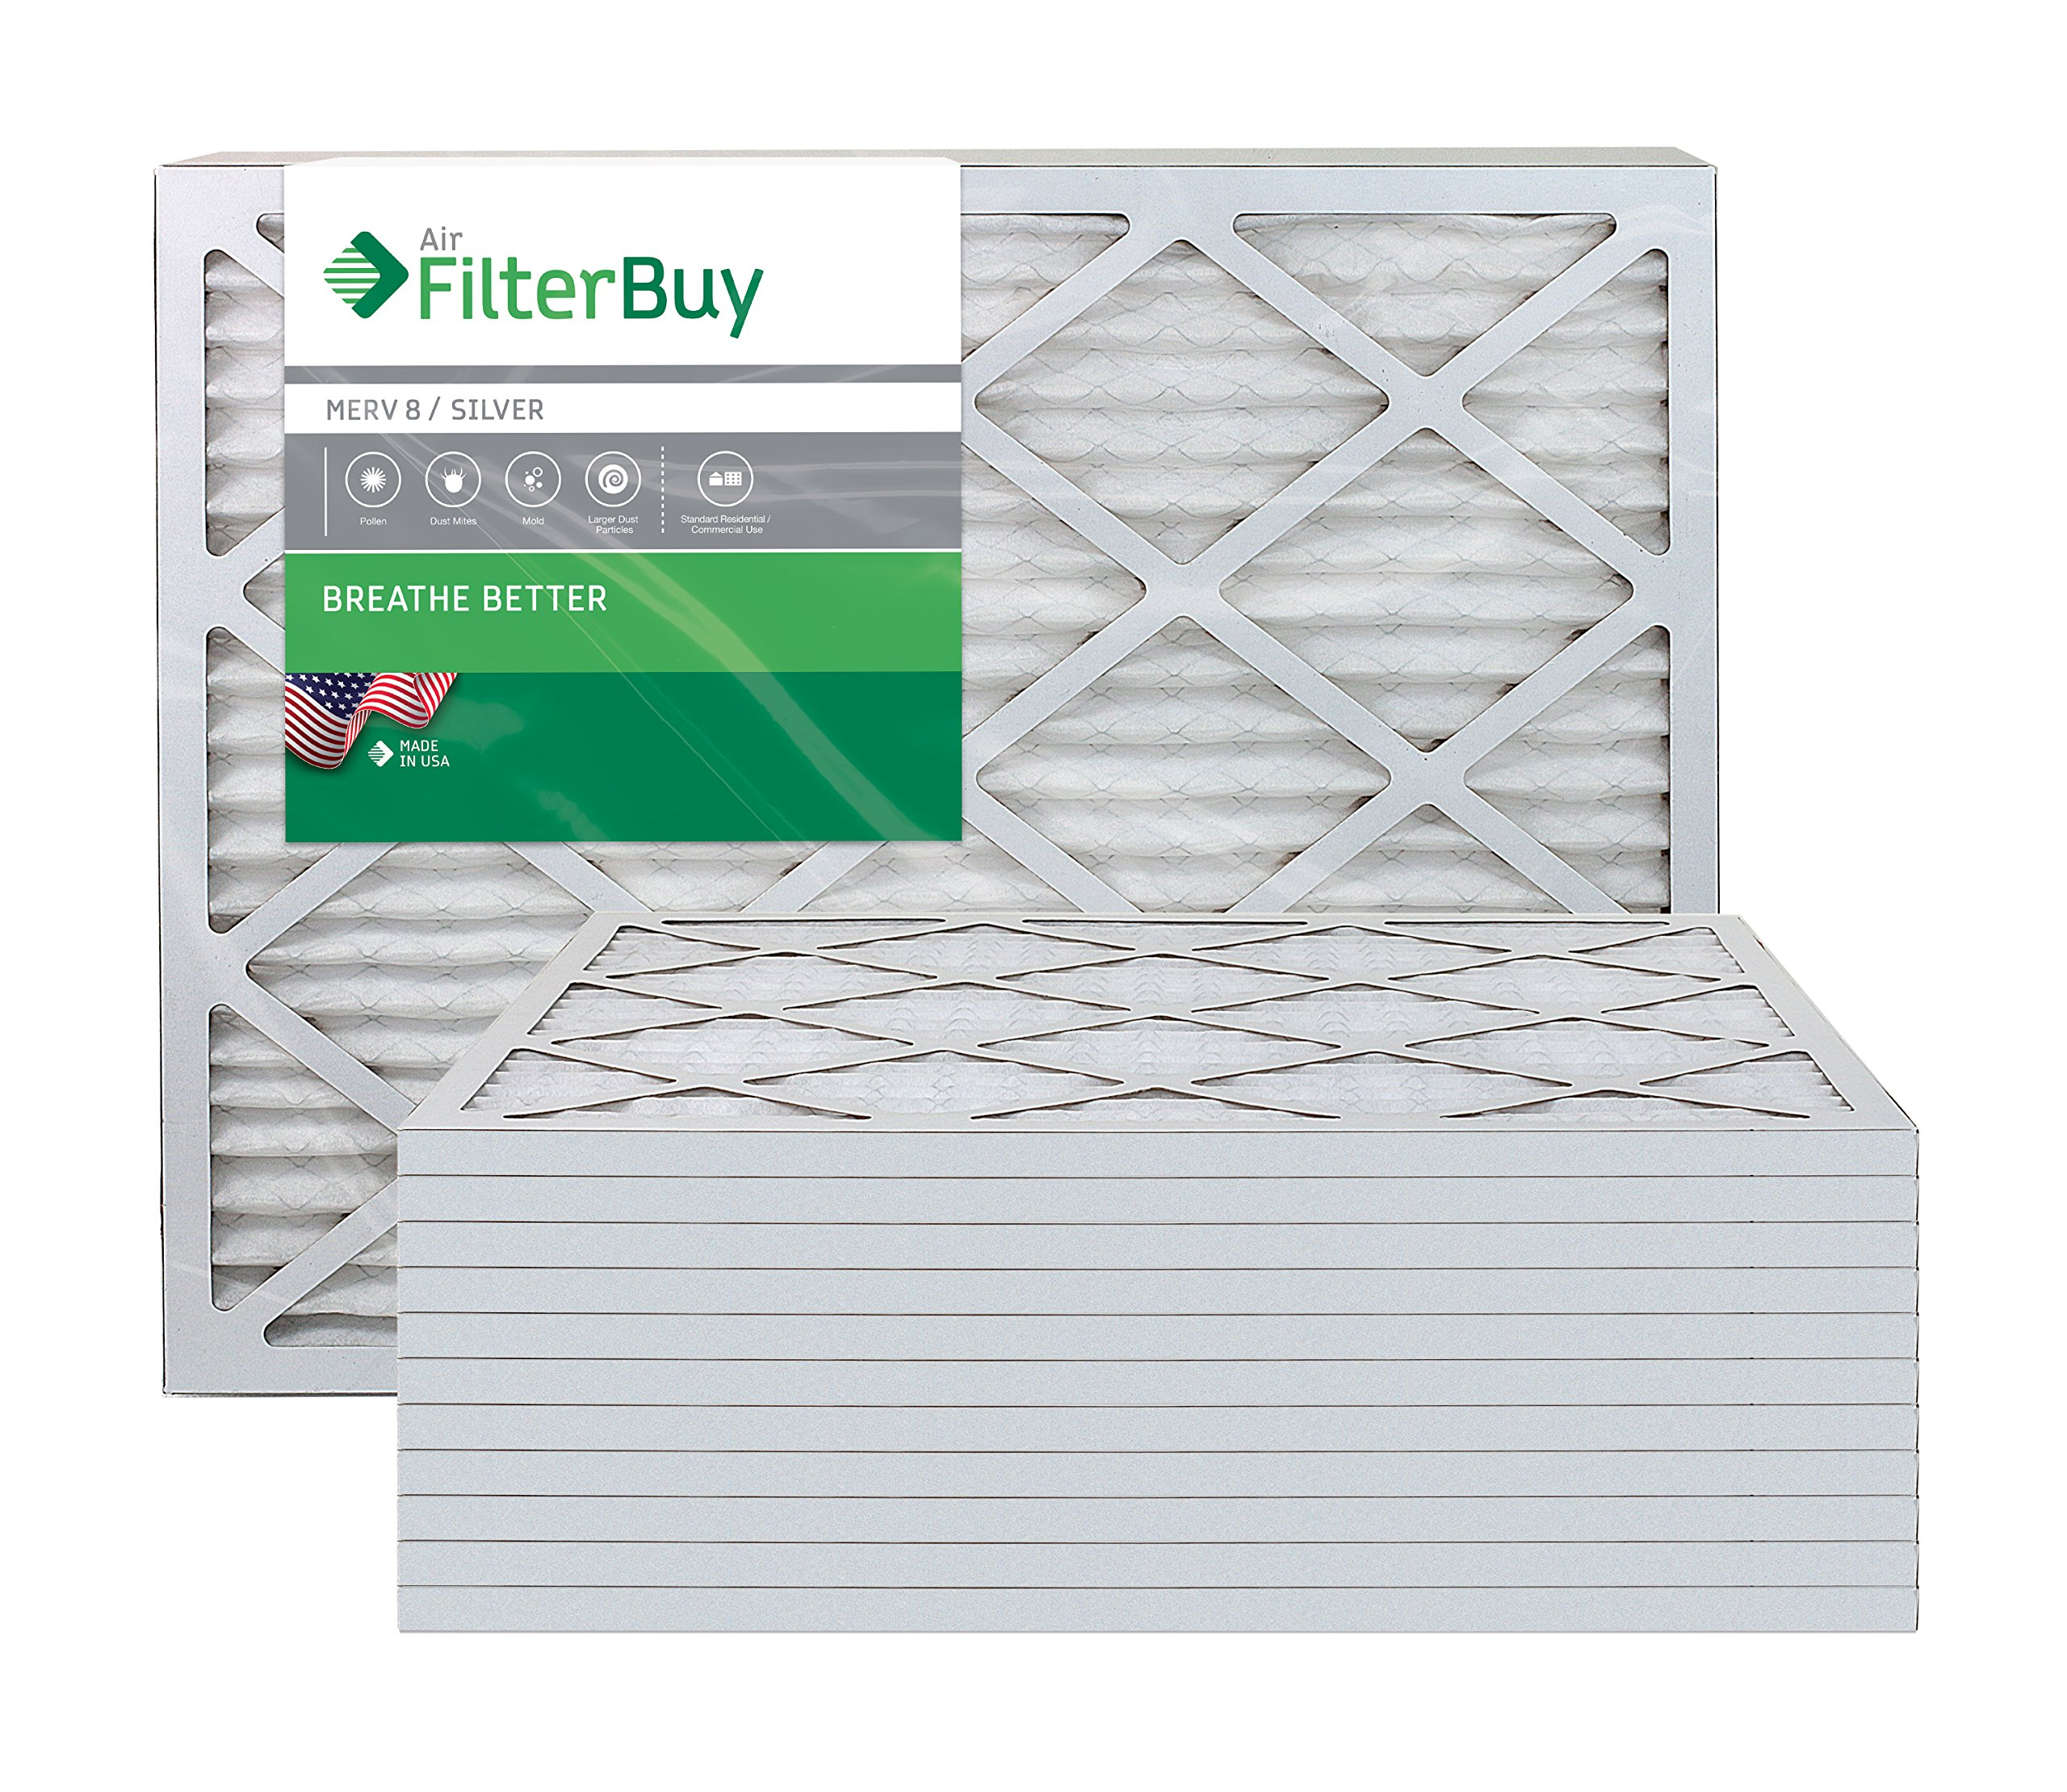 FilterBuy 10x30x1 MERV 8 Pleated AC Furnace Air Filter, (Pack of 12 Filters), 10x30x1 – Silver